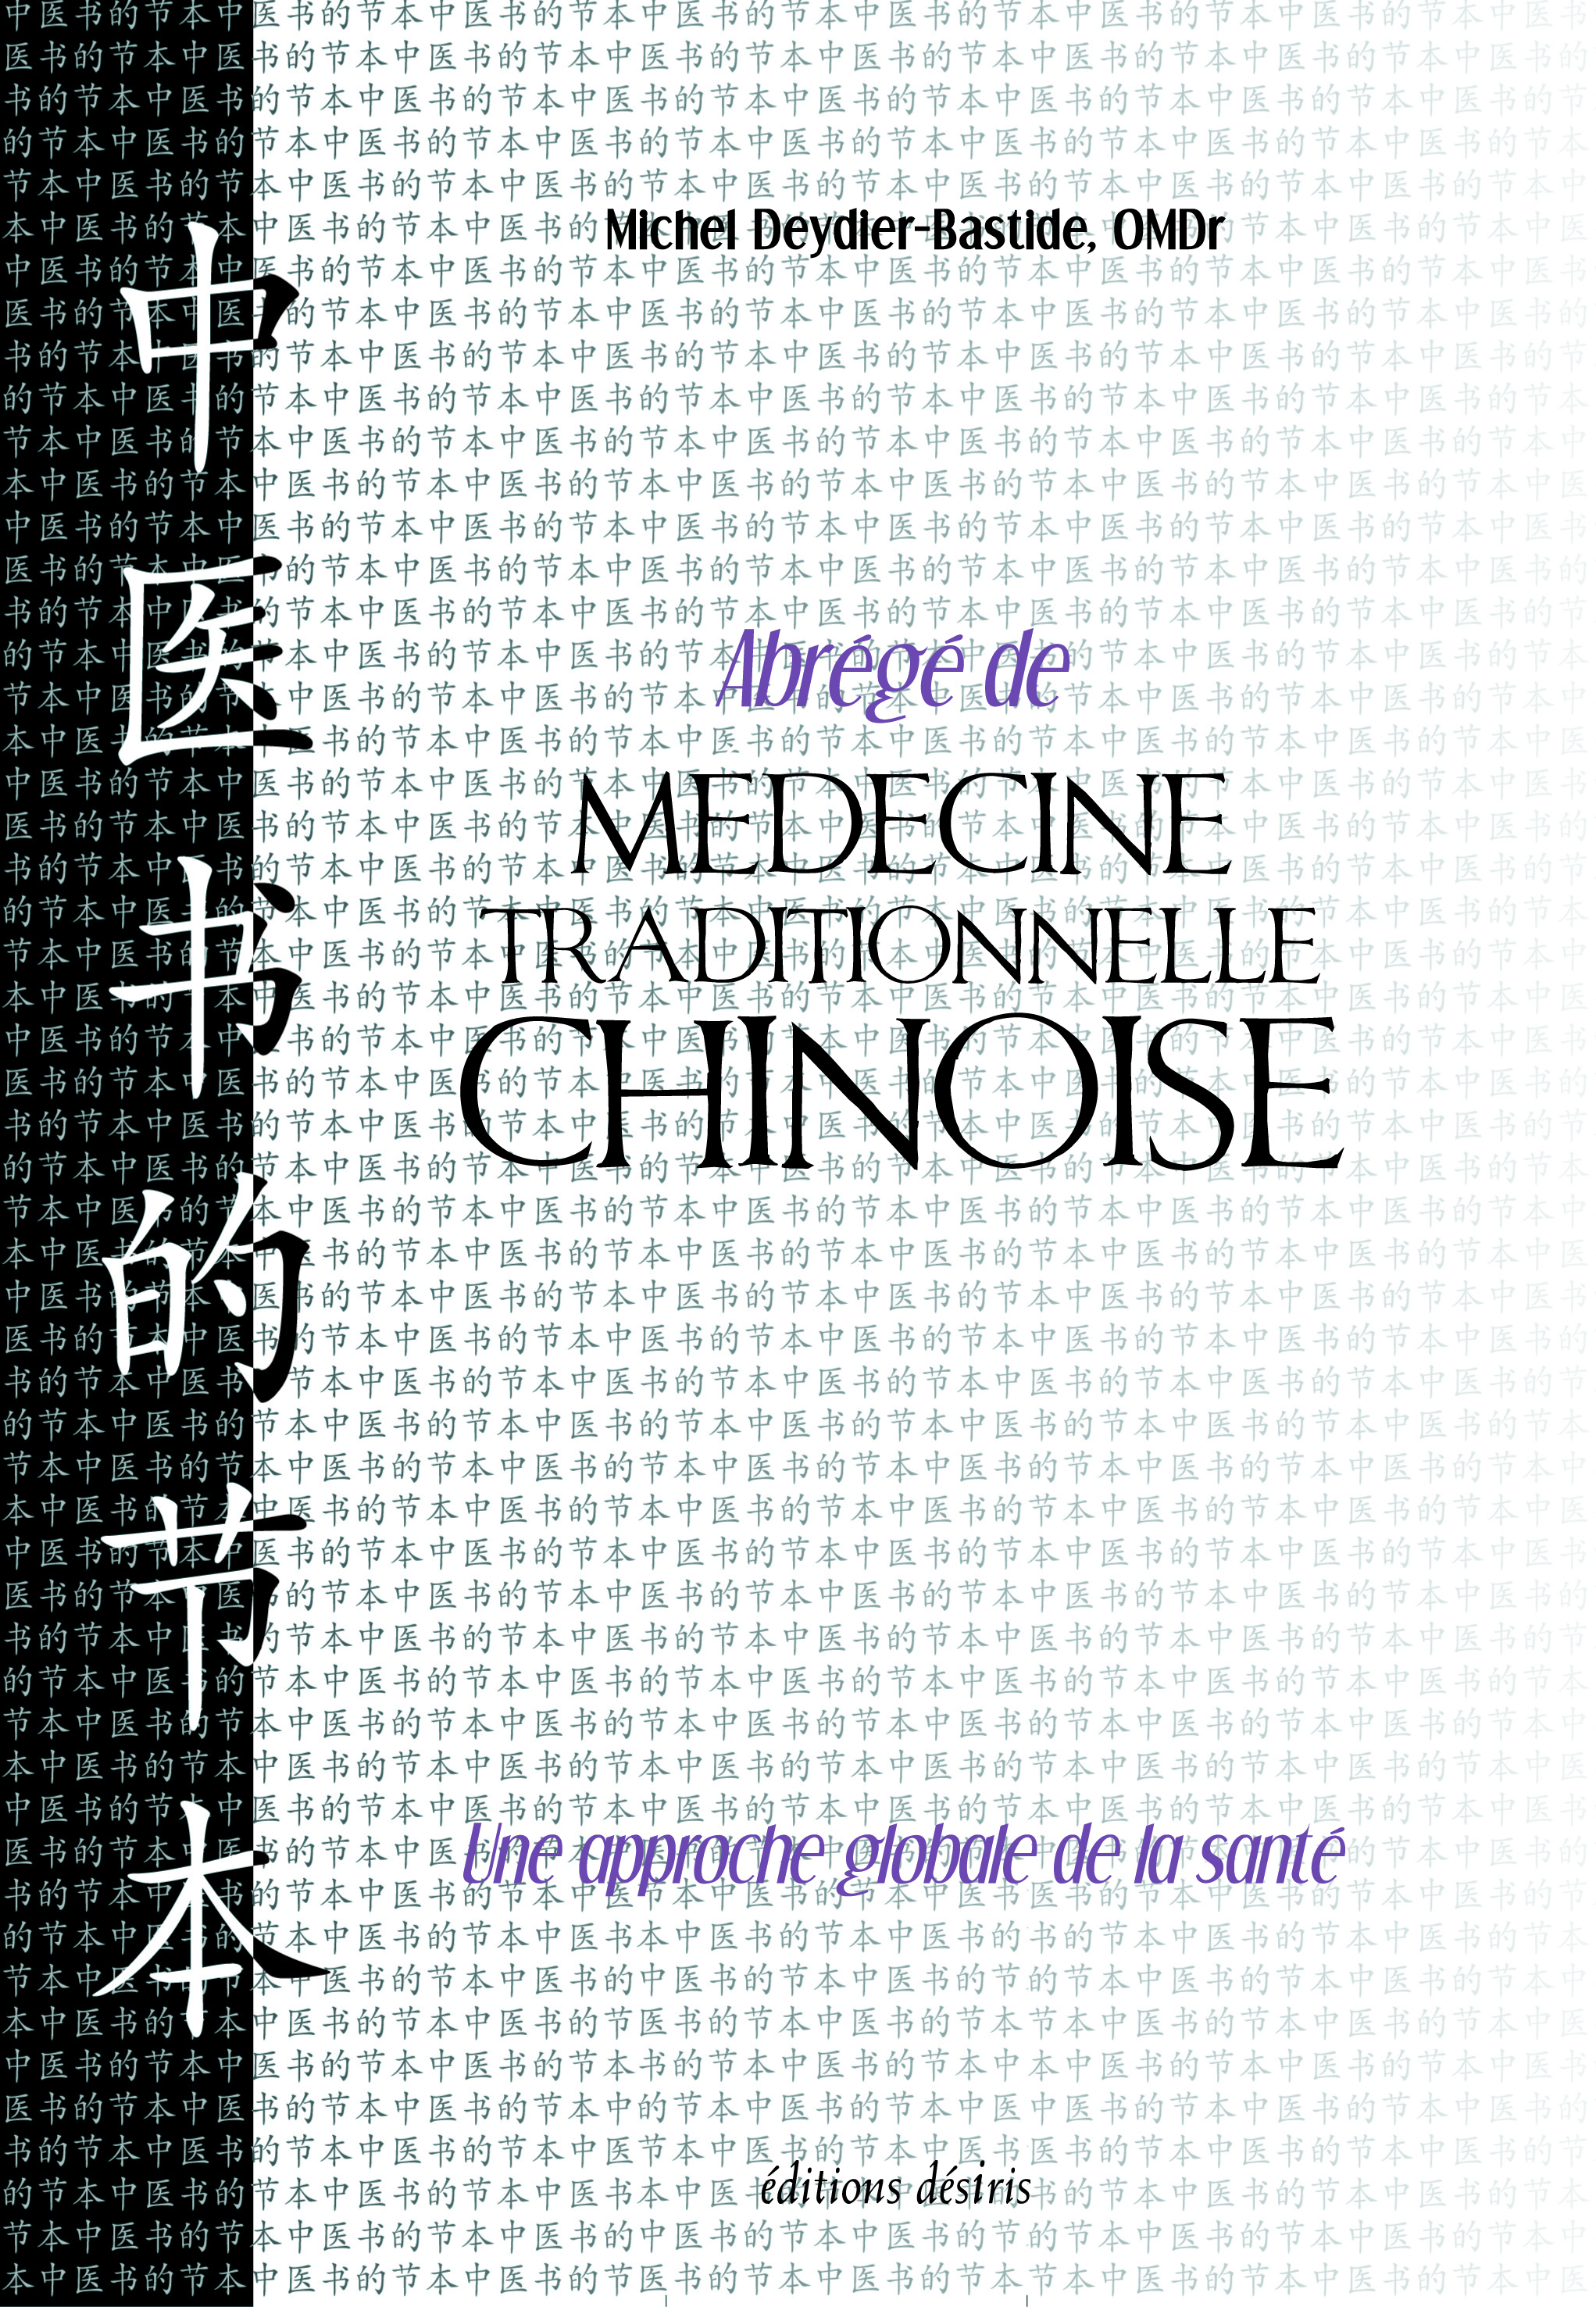 ABREGE MEDECINE TRADITIONNELLE CHINOISE